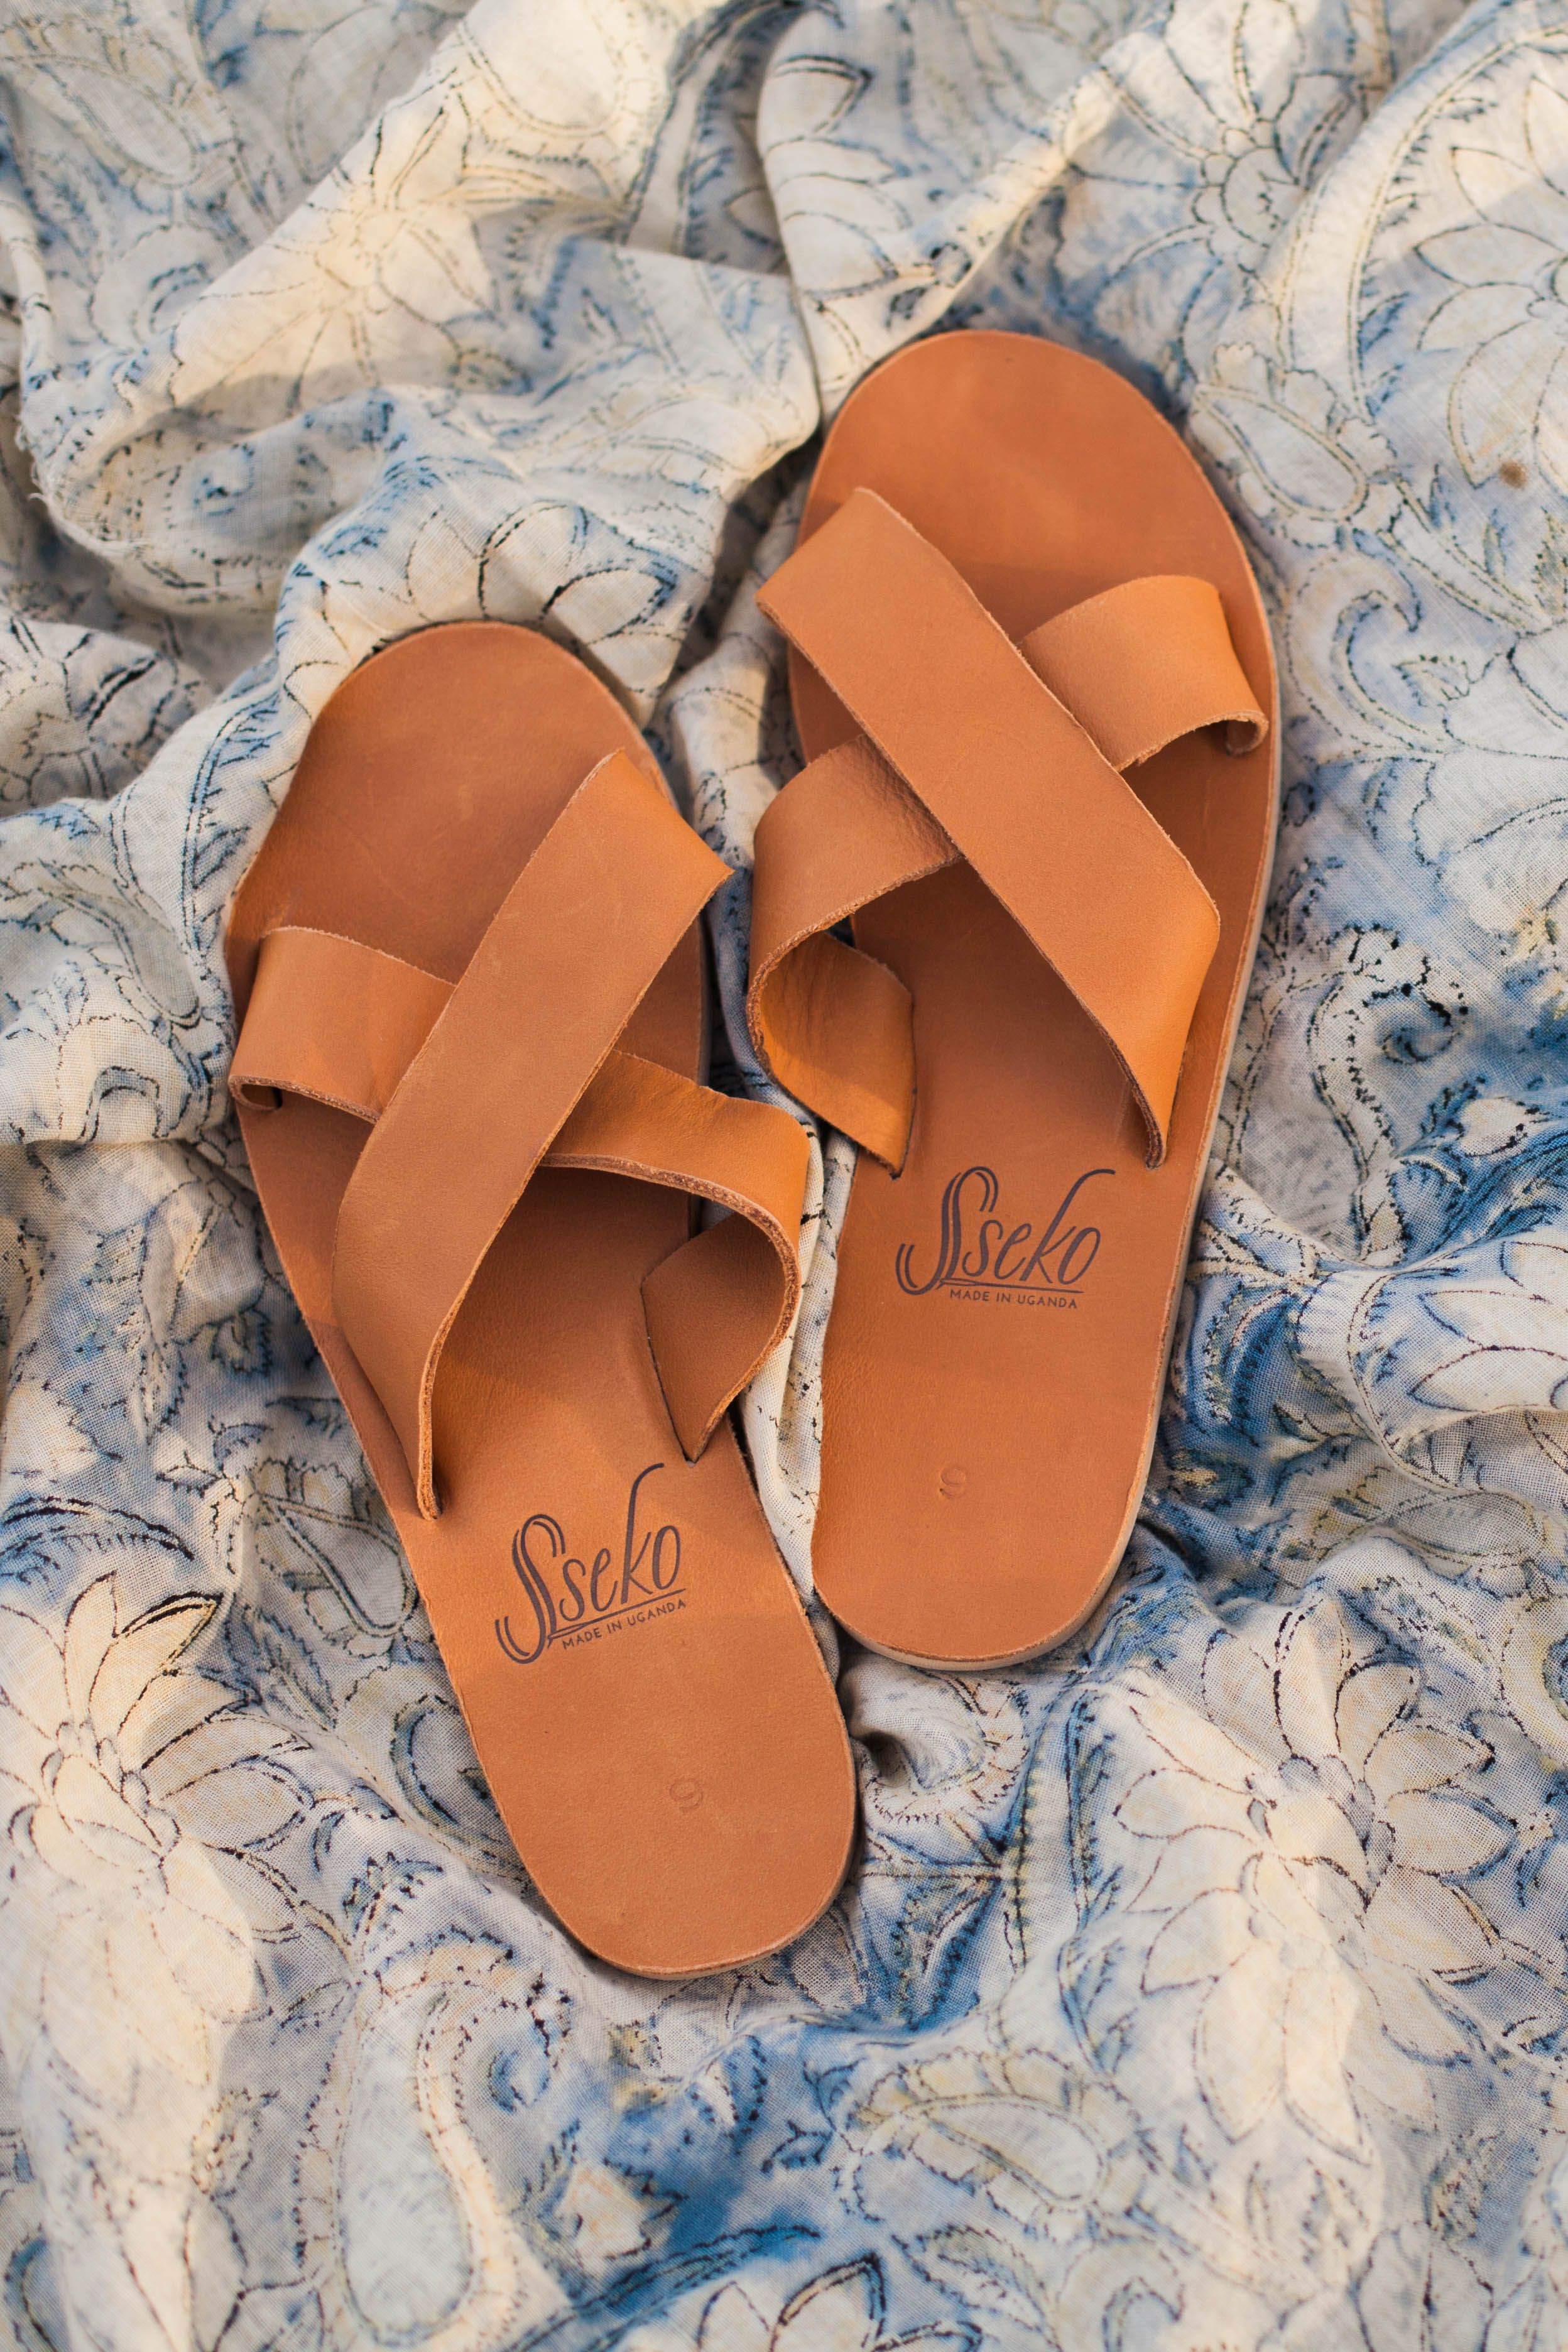 117f4e40d4d8 Sseko sandals are made from locally sourced East African materials and are  genuine leather! They are simple and trendy enough to just throw on and be  ready ...